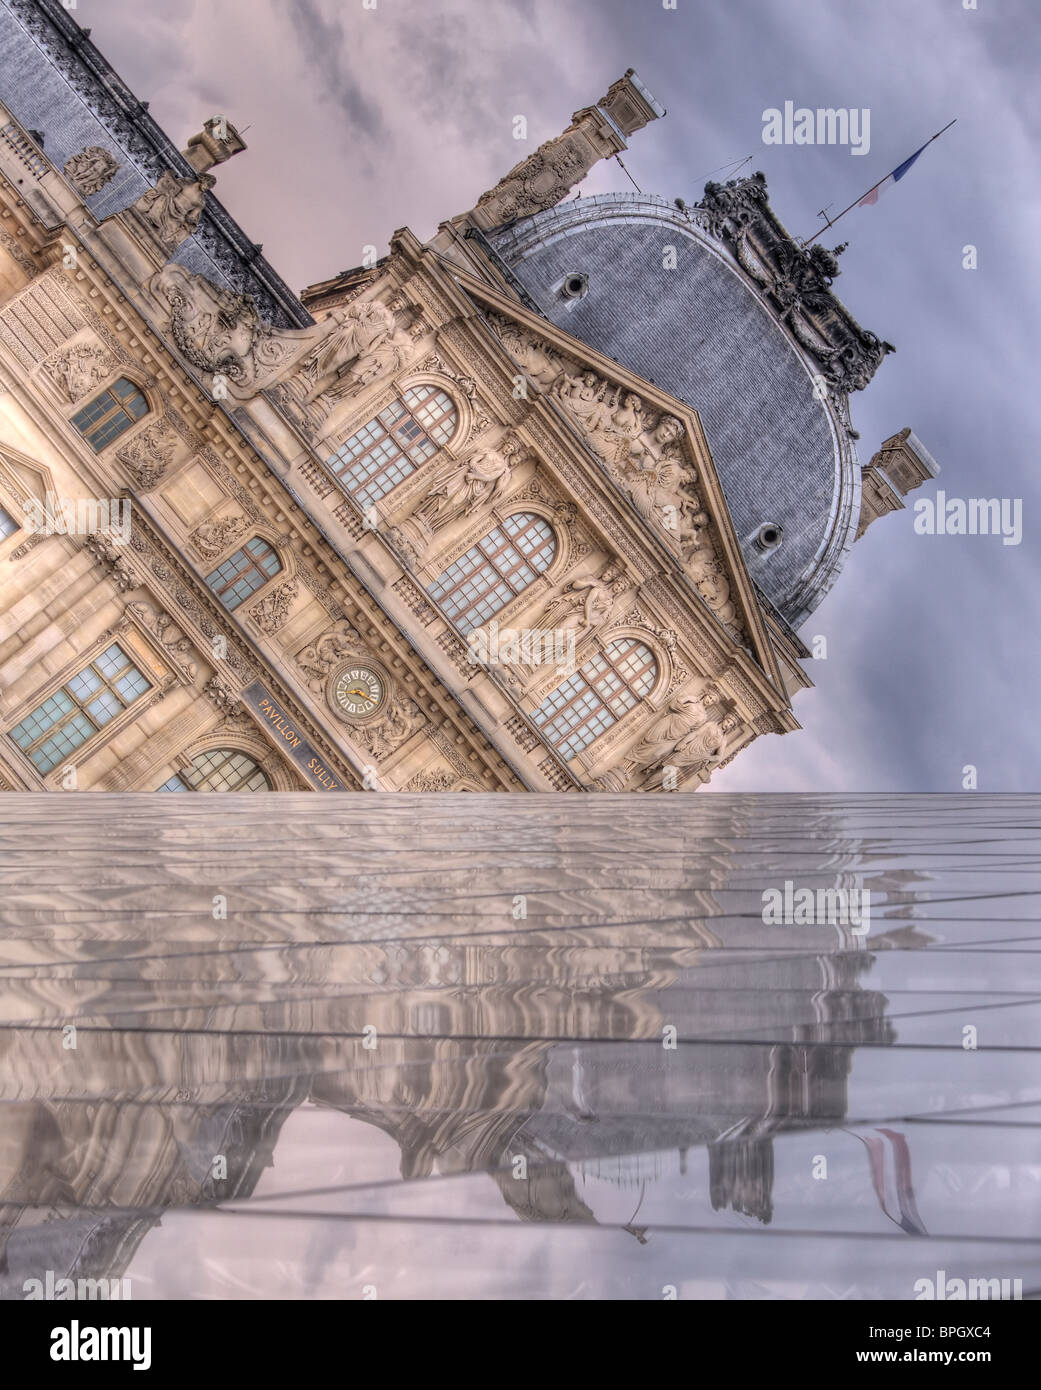 The Louvre reflects from I.M. Pei's Pyramid, as storm clouds gather above. One wall of the Pyramid forms a false Stock Photo